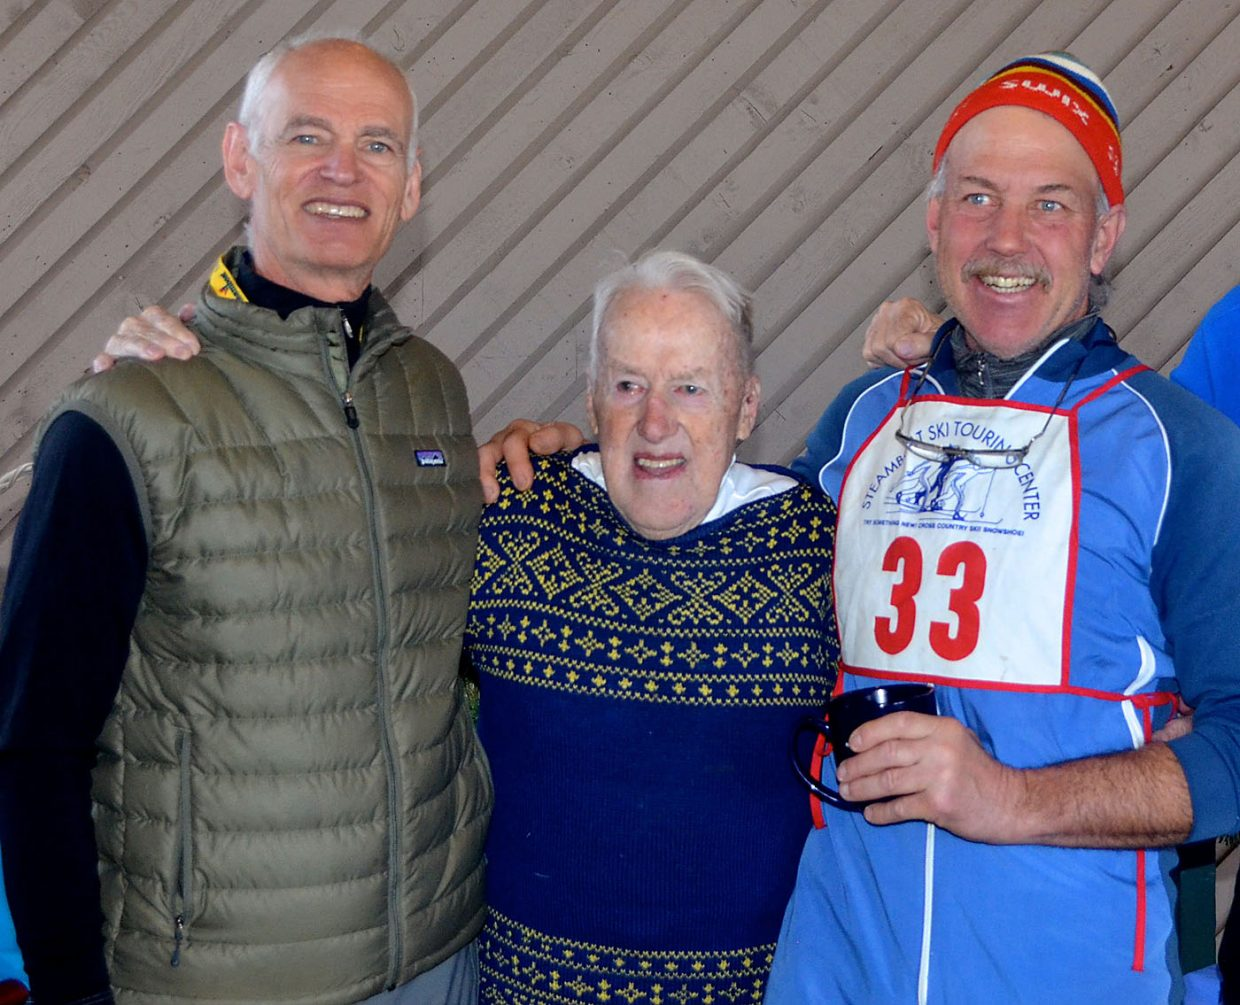 Avid mountain climber, Dr. Dan Smilkstein, left, and longtime Steamboat Springs Winter Sports Club cross country skiing Coach Greg Burkholder, right, were among the many well-wishers wanting to be photographed Saturday with Colorado Ski Hall of Fame member Sven Wiik at his 94th surprise birthday party.